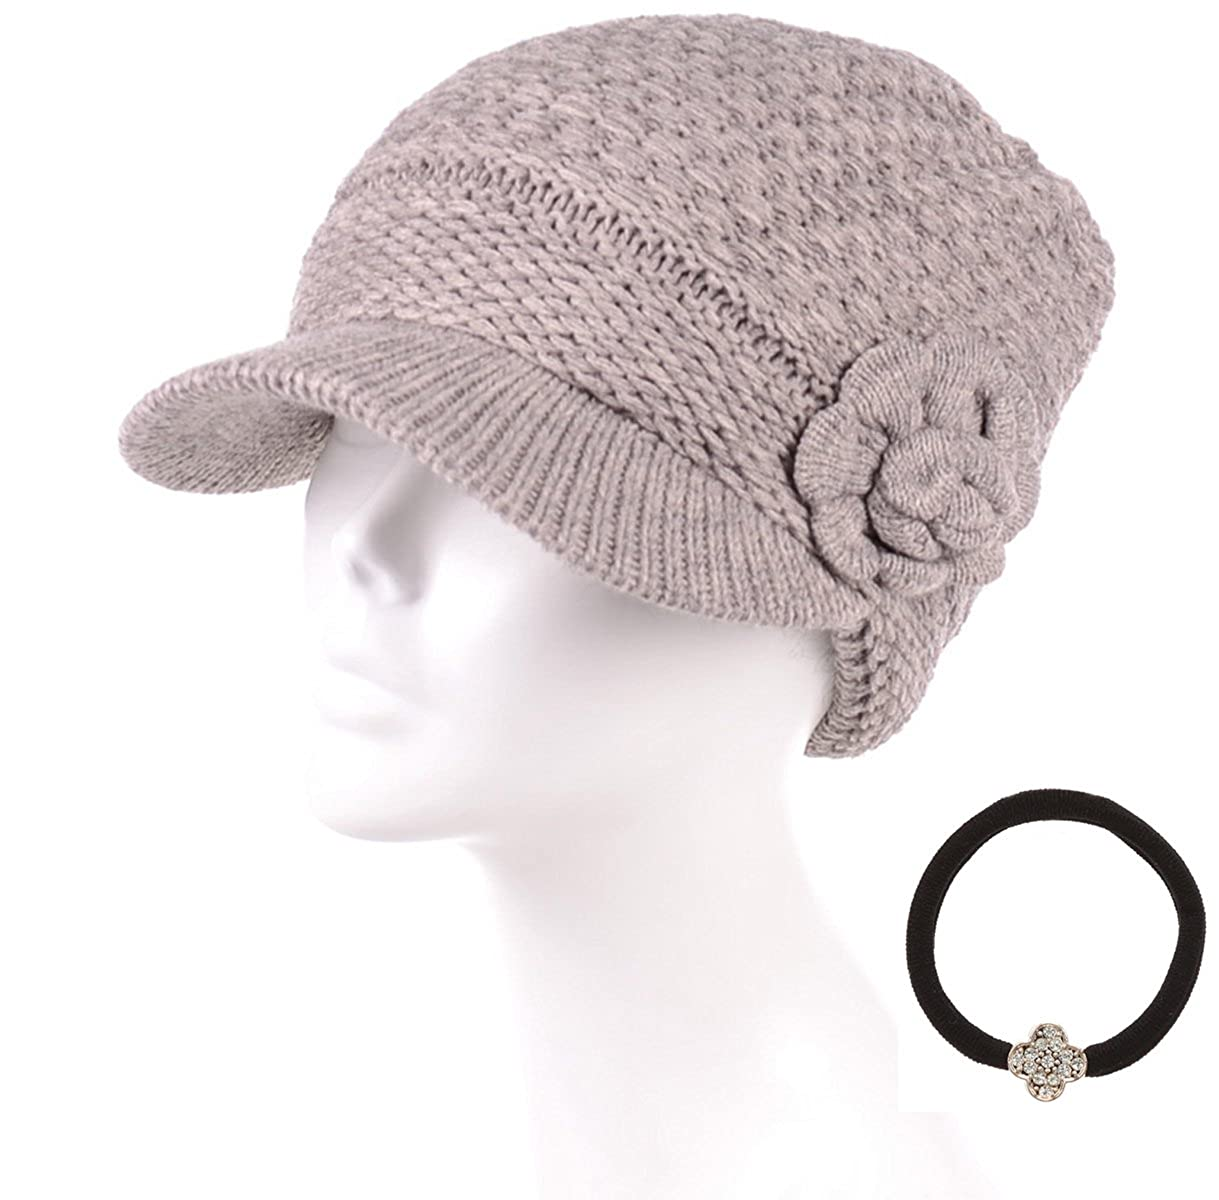 5ac44ec0f7cbb MIRMARU Women s Winter Cable Knitted Beret Visor Beanie Hat with ...